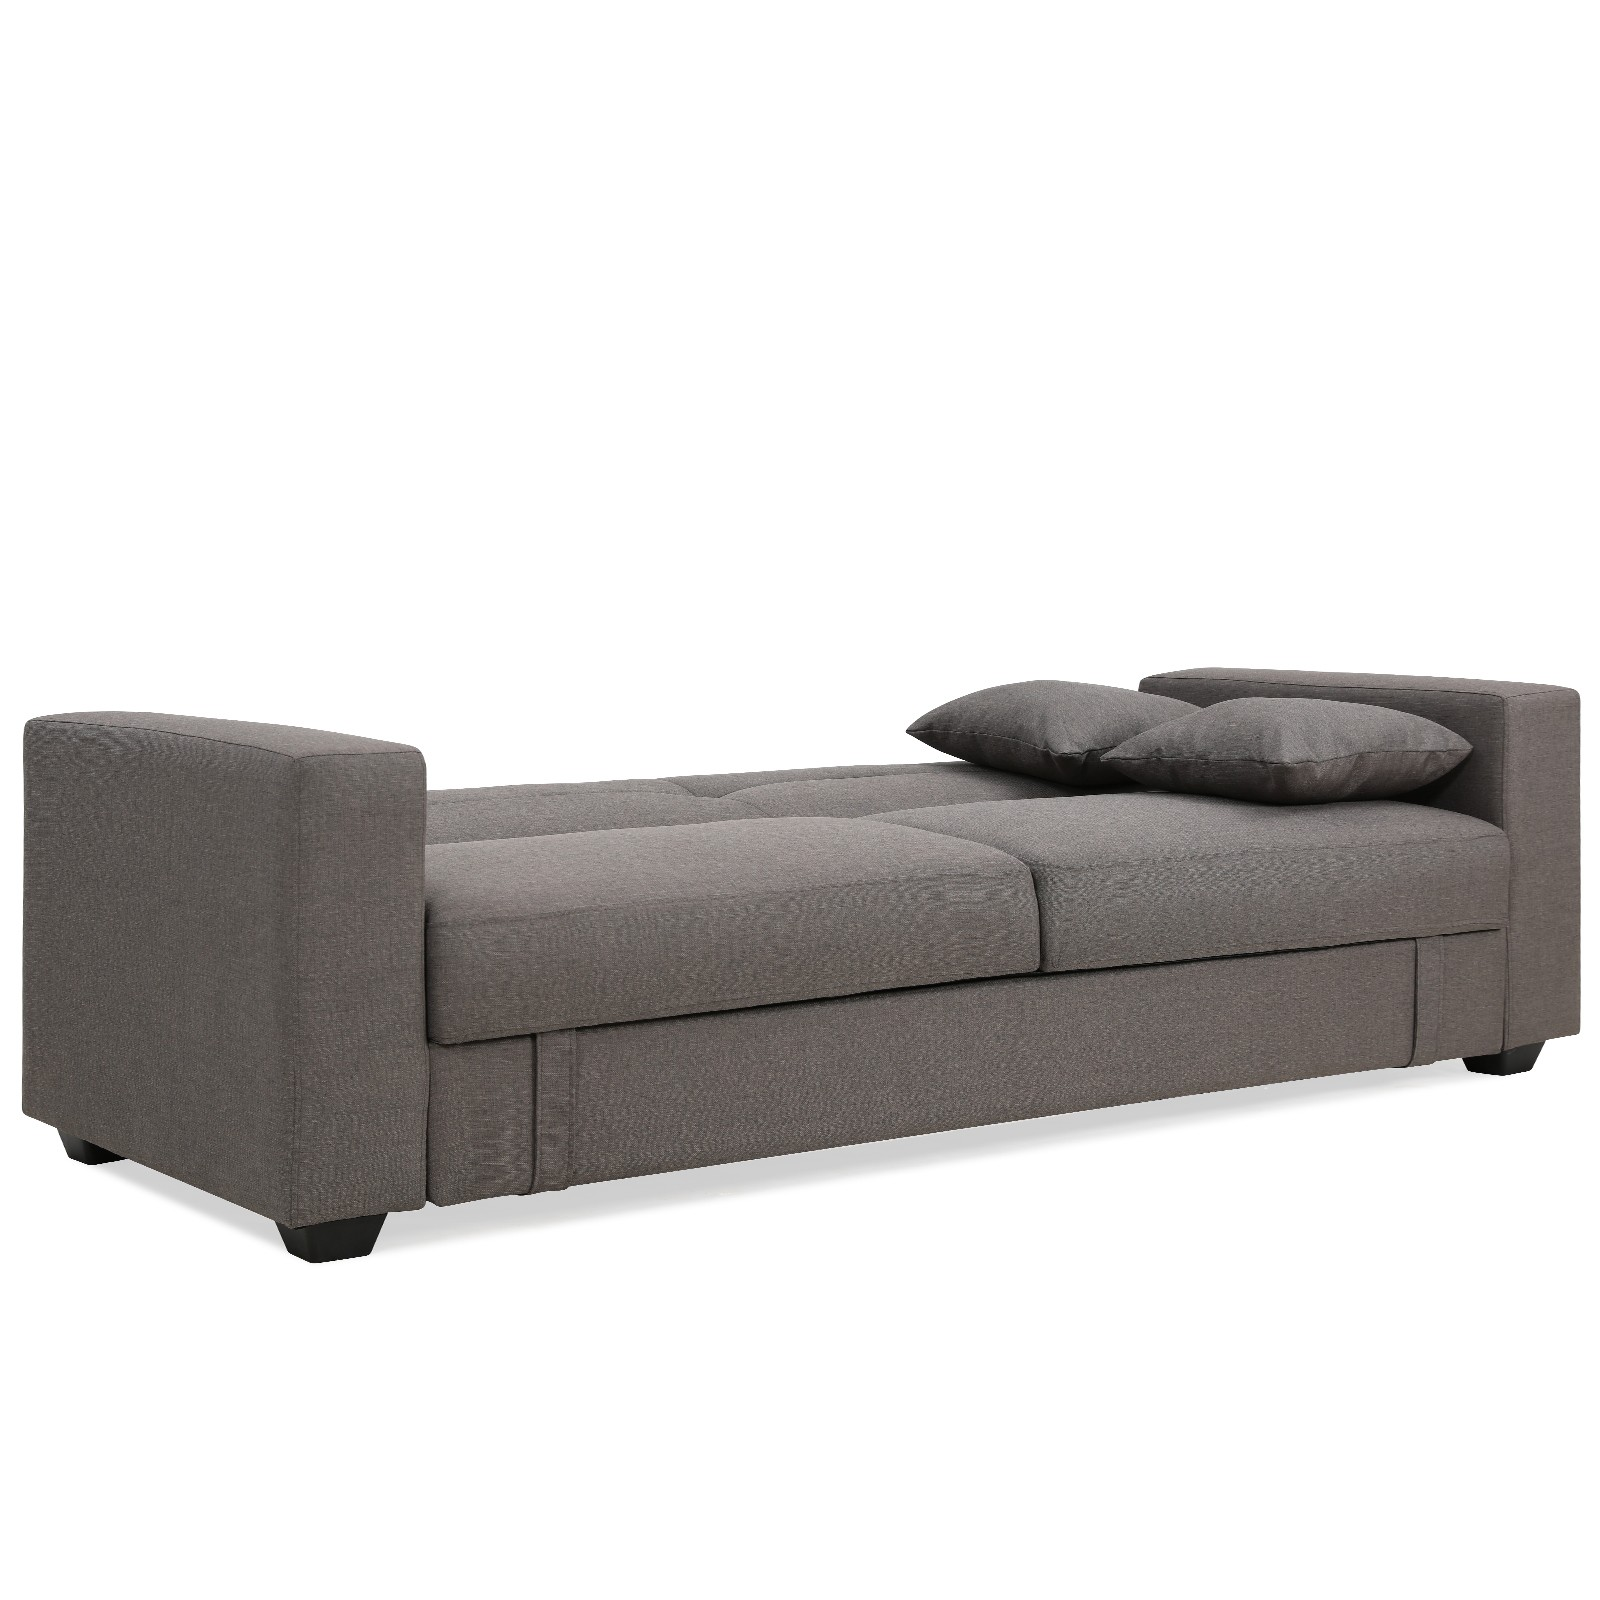 Erica Grey Fabric Sofa Bed